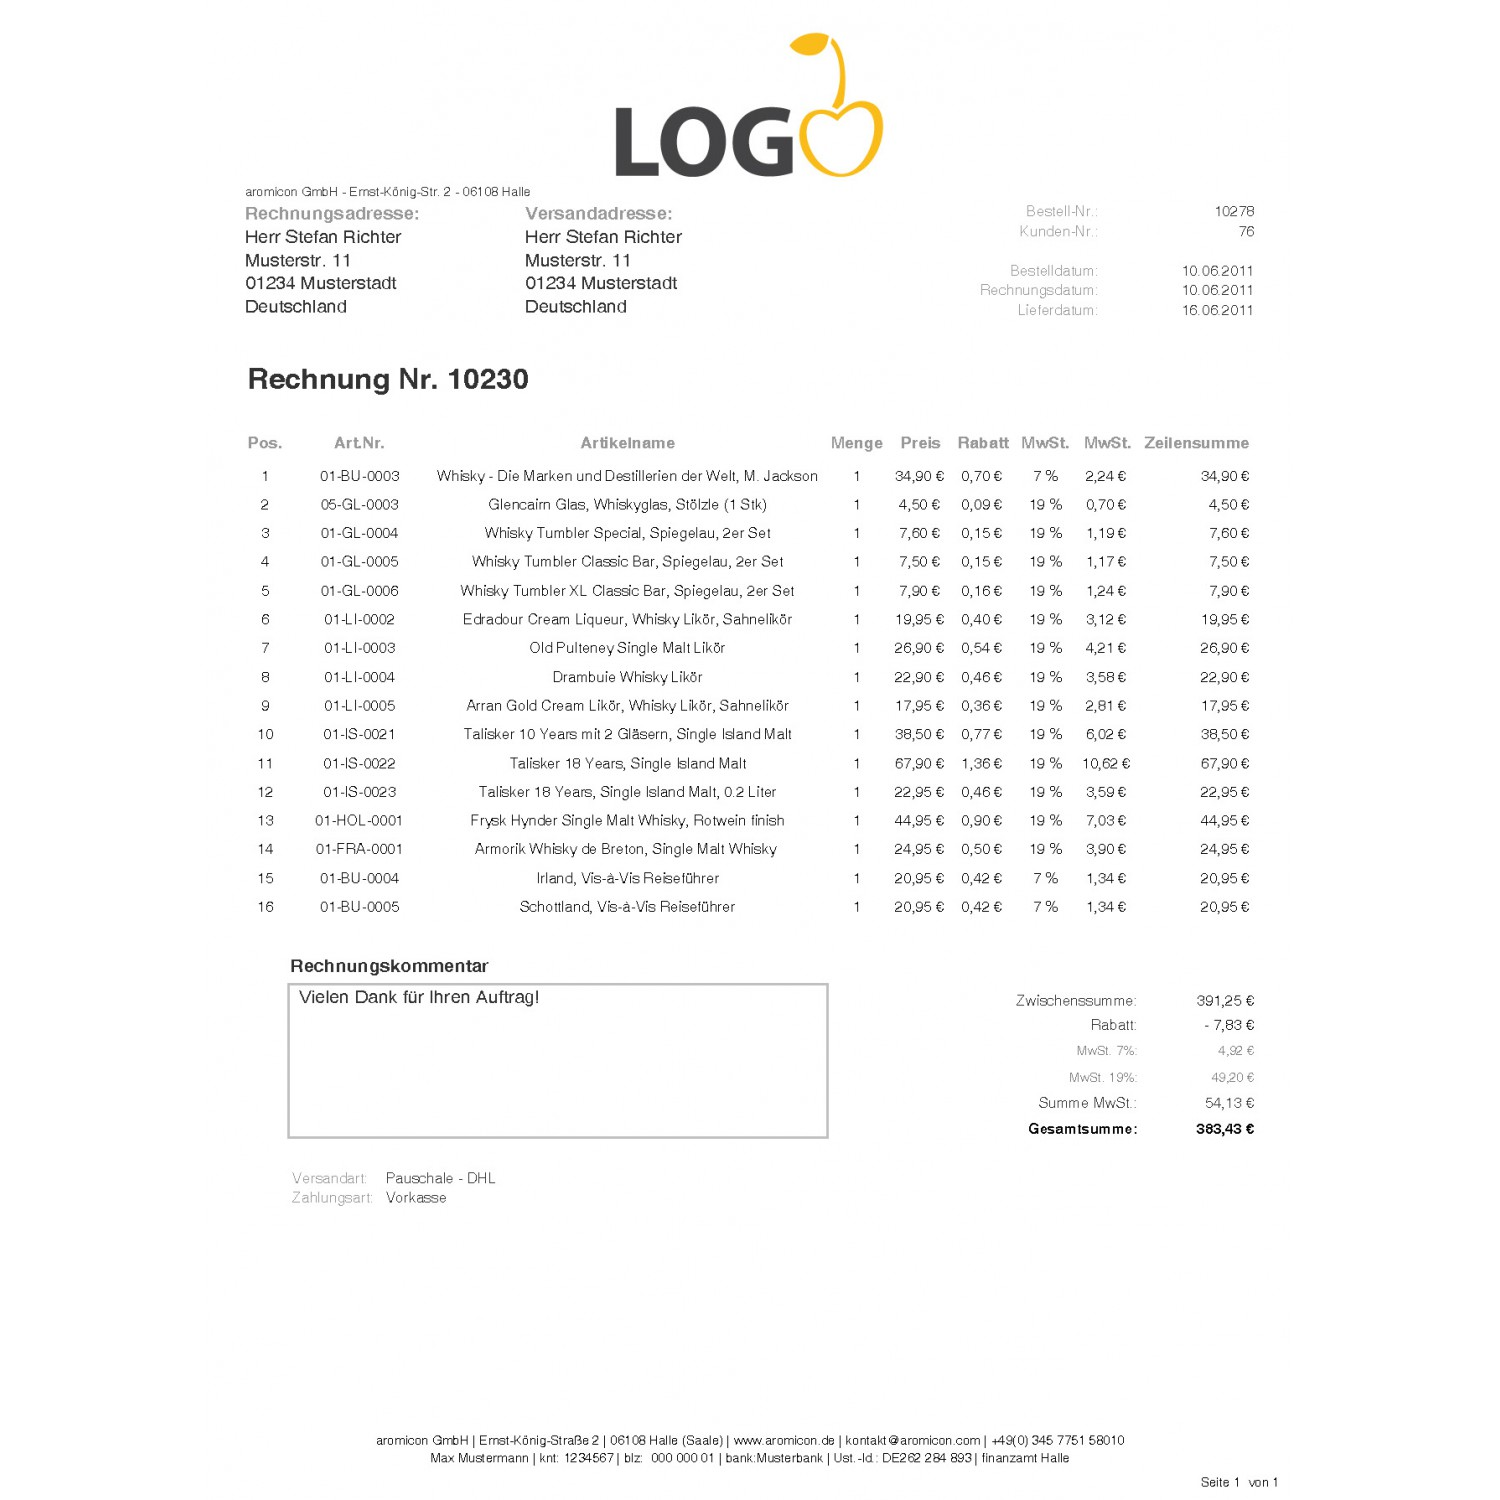 Blank Invoices Free Pdf Download Invoice Template Germany  Rabitahnet How To Organize Receipts For A Small Business with Auto Dealer Invoice Pdf Invoice Pdf Pro  Standard Invoice Template German  Aromicon Invoice  Examples Cash Receipts In Accounting Word